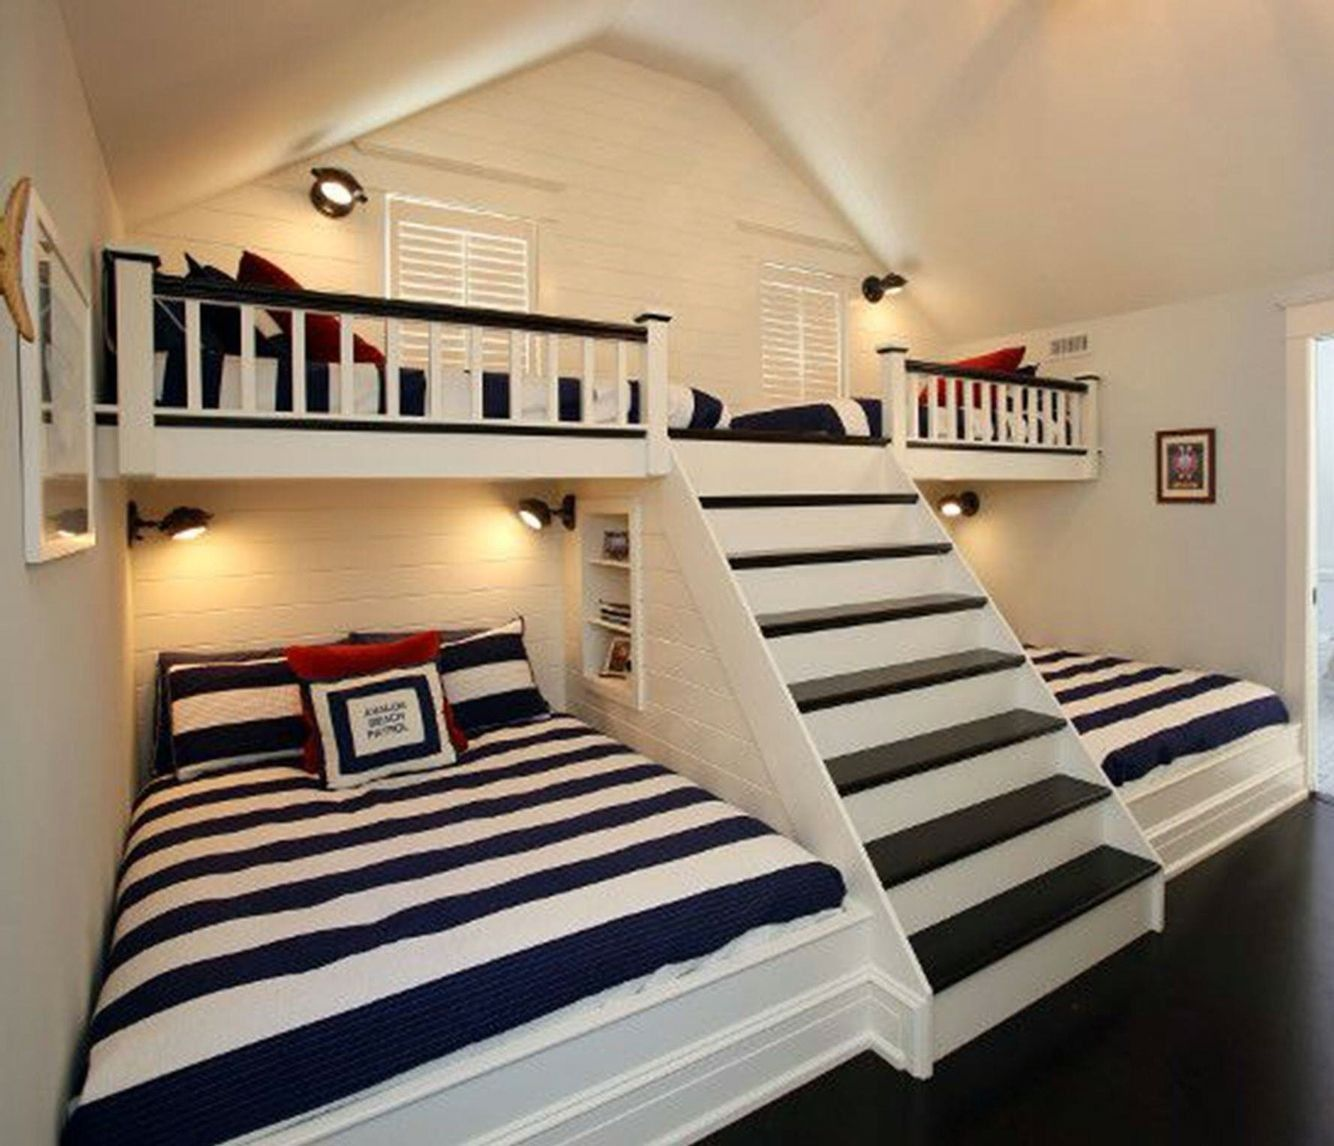 Custom loft bed ideas  Small Lake House Decorating Ideas Inspirational Kids Room for Our